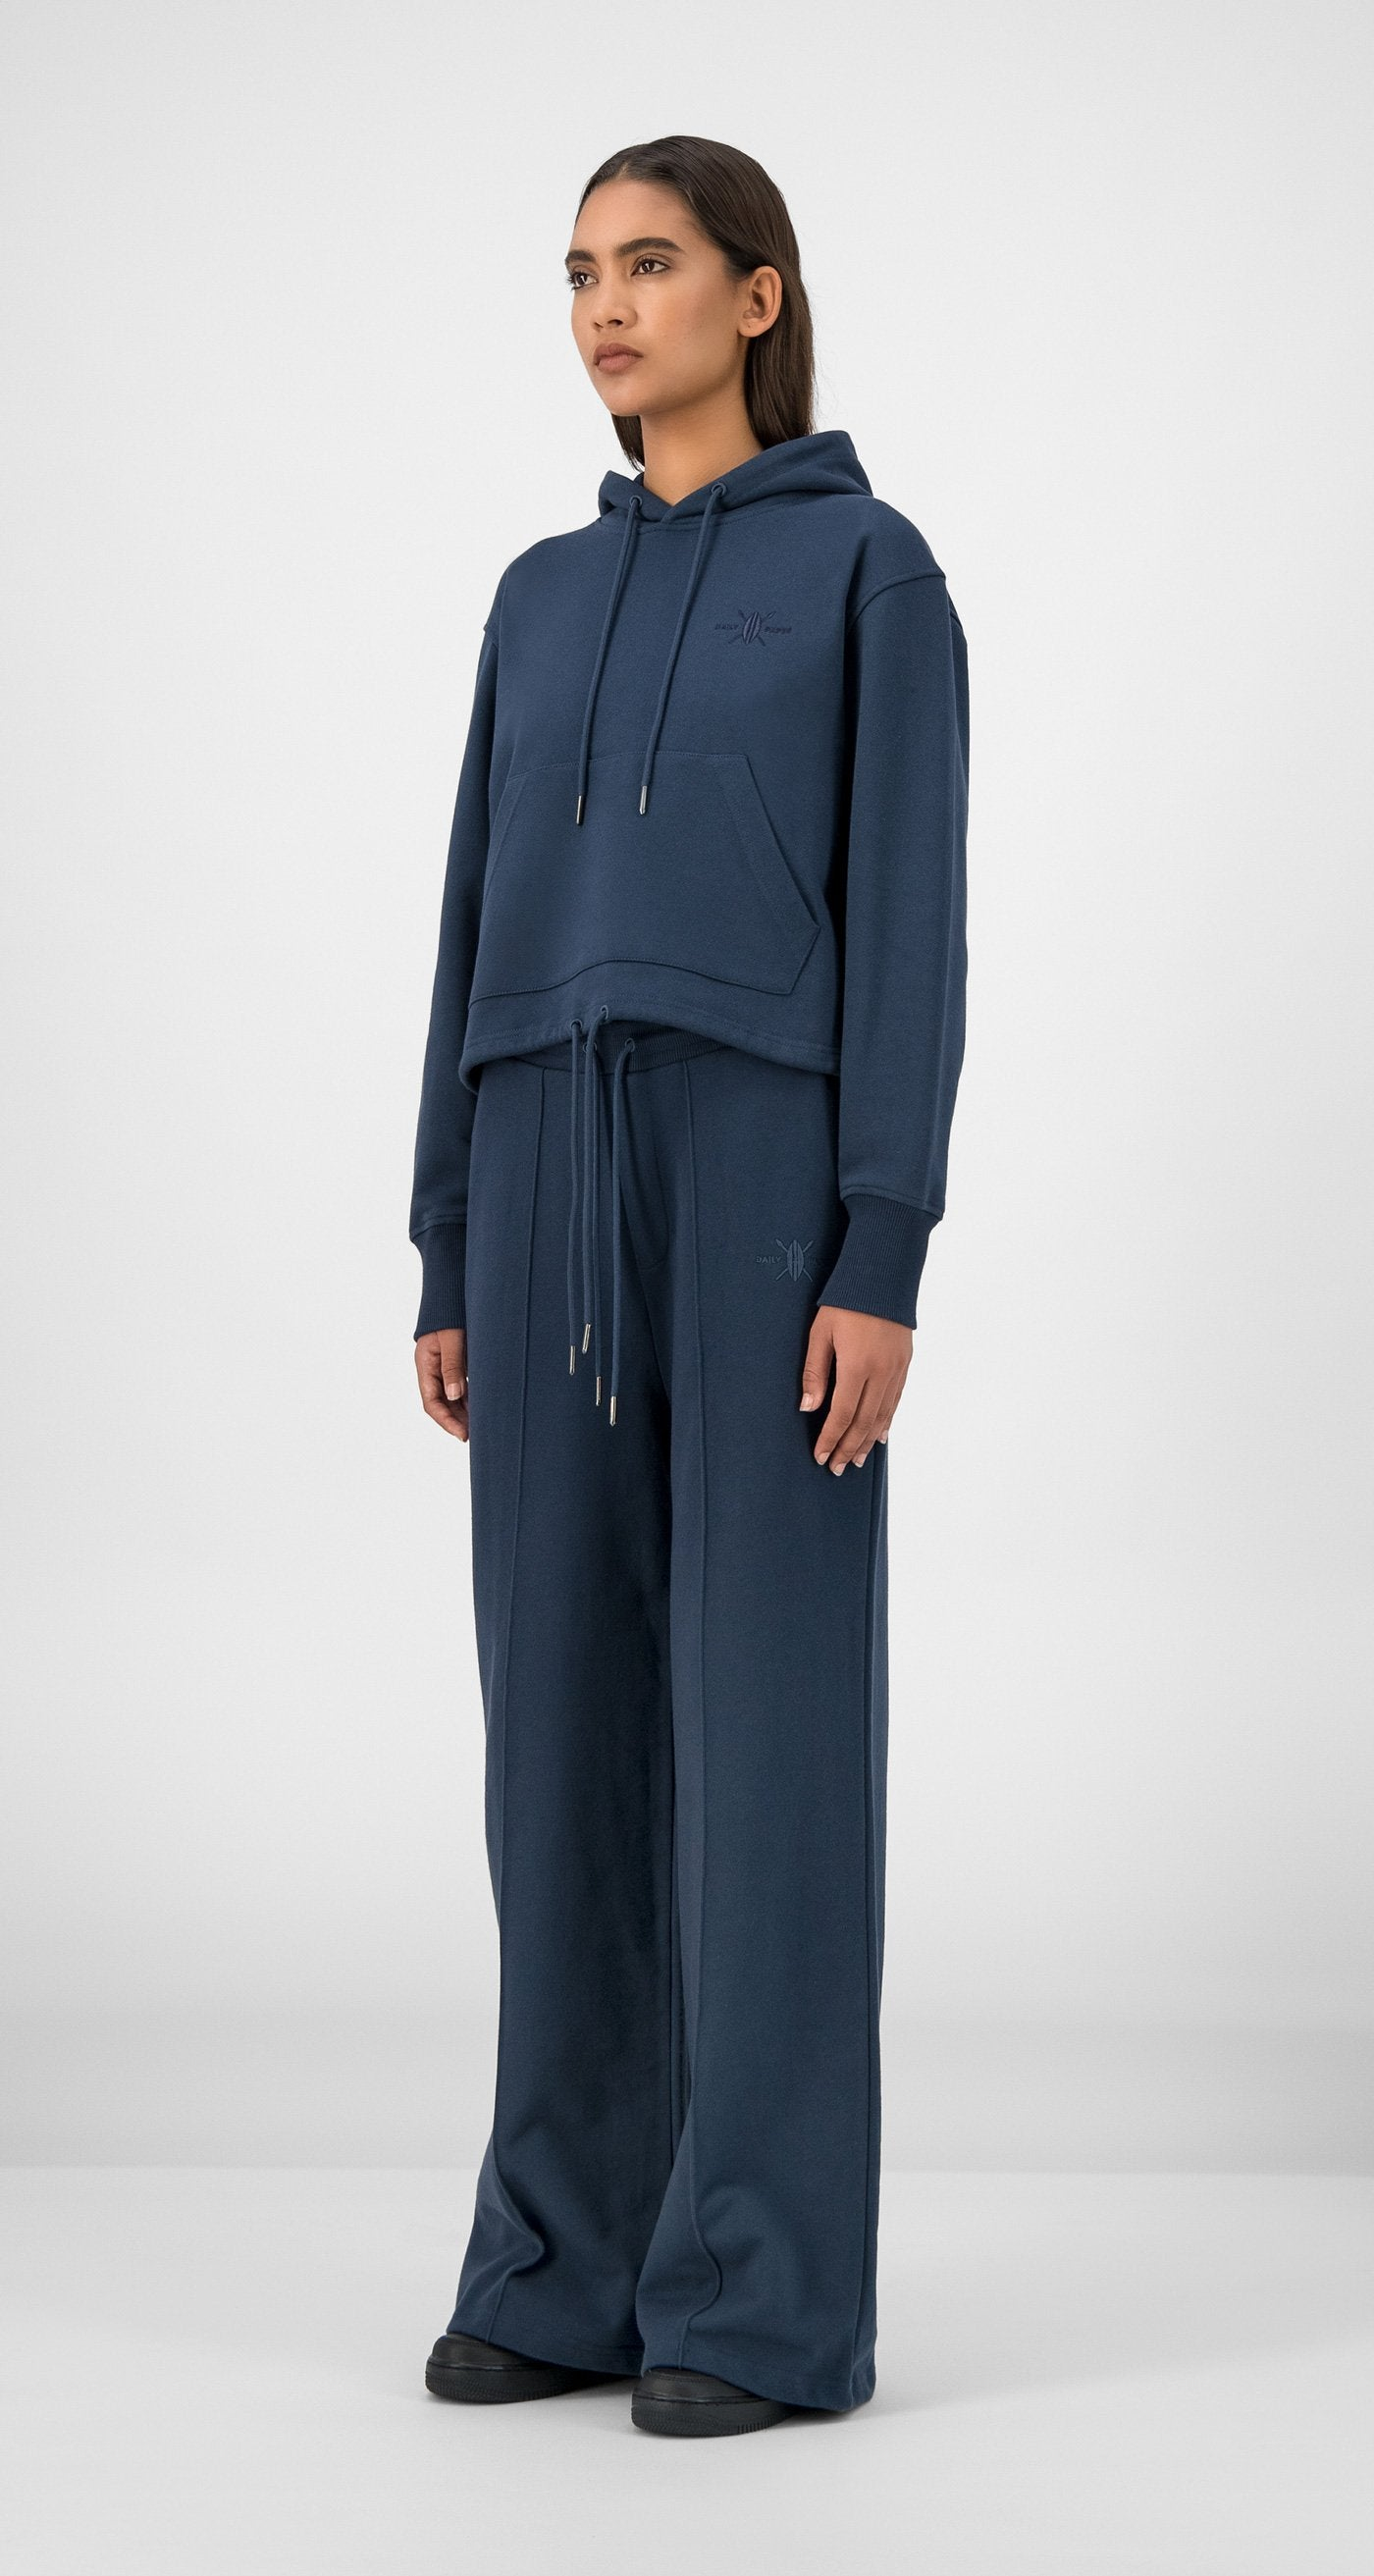 Daily Paper - Navy GIfa Pants Women